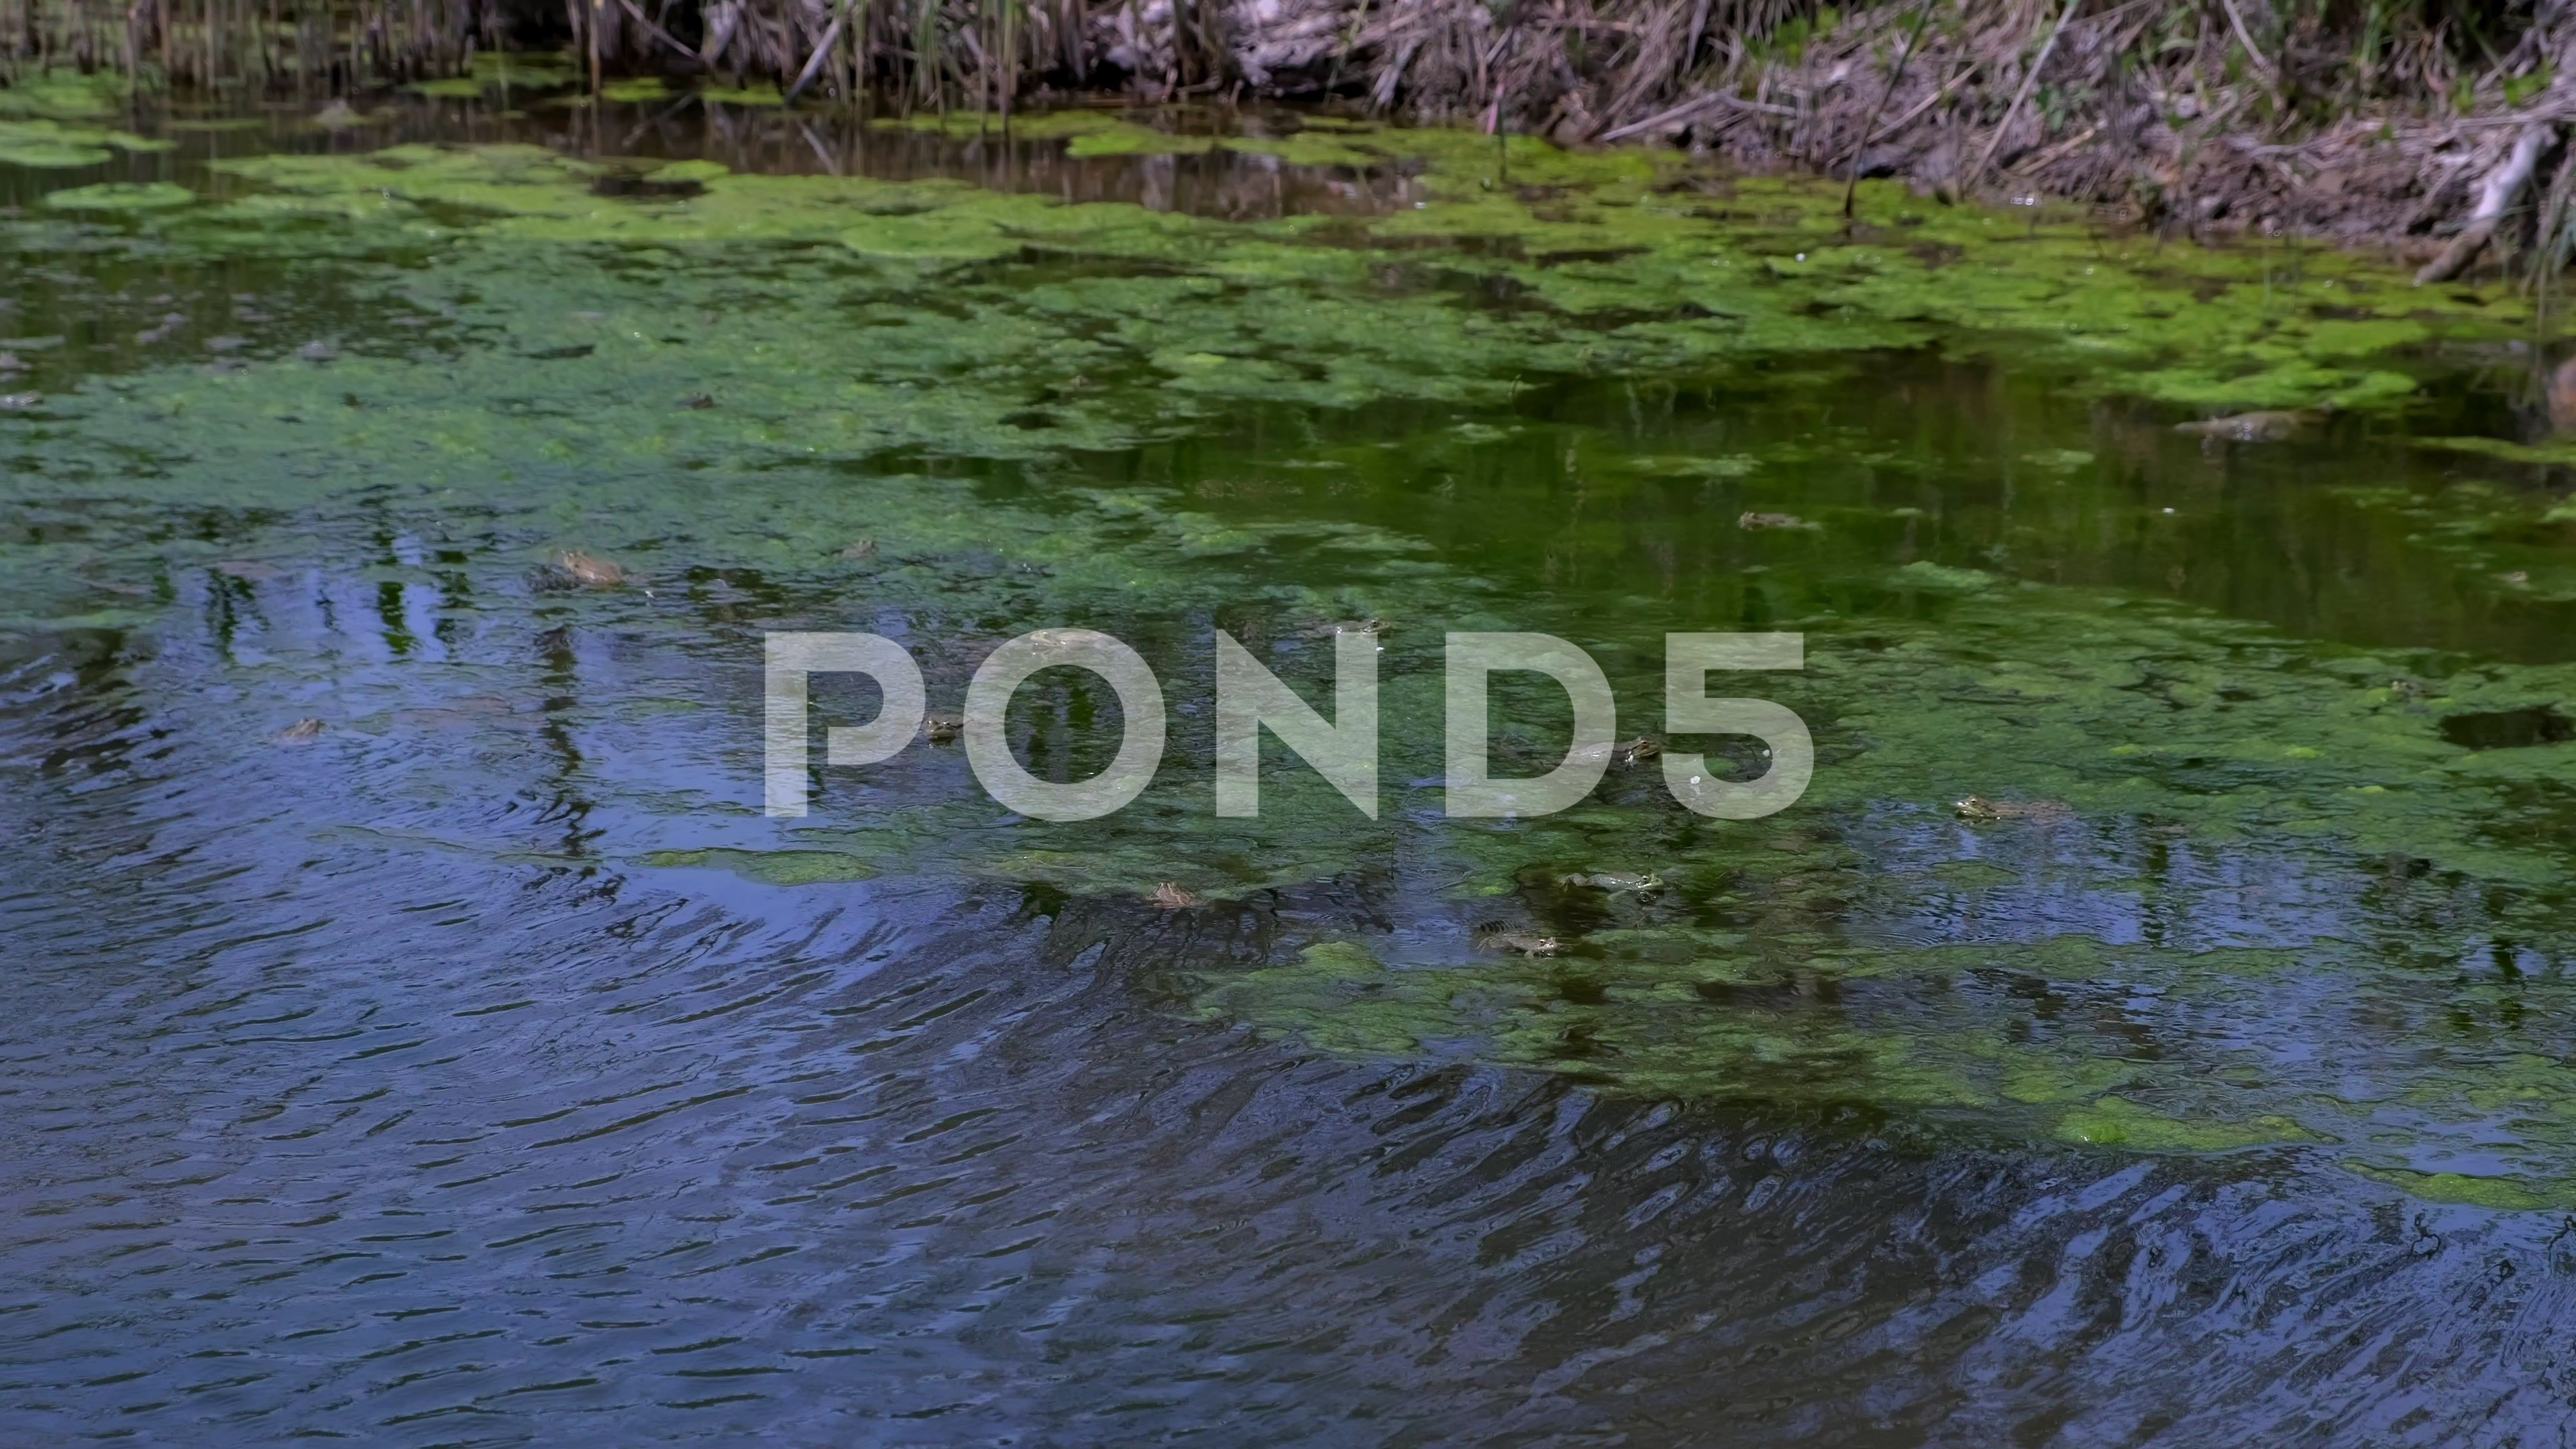 Many frogs in swamp, pond of murky water, full of green